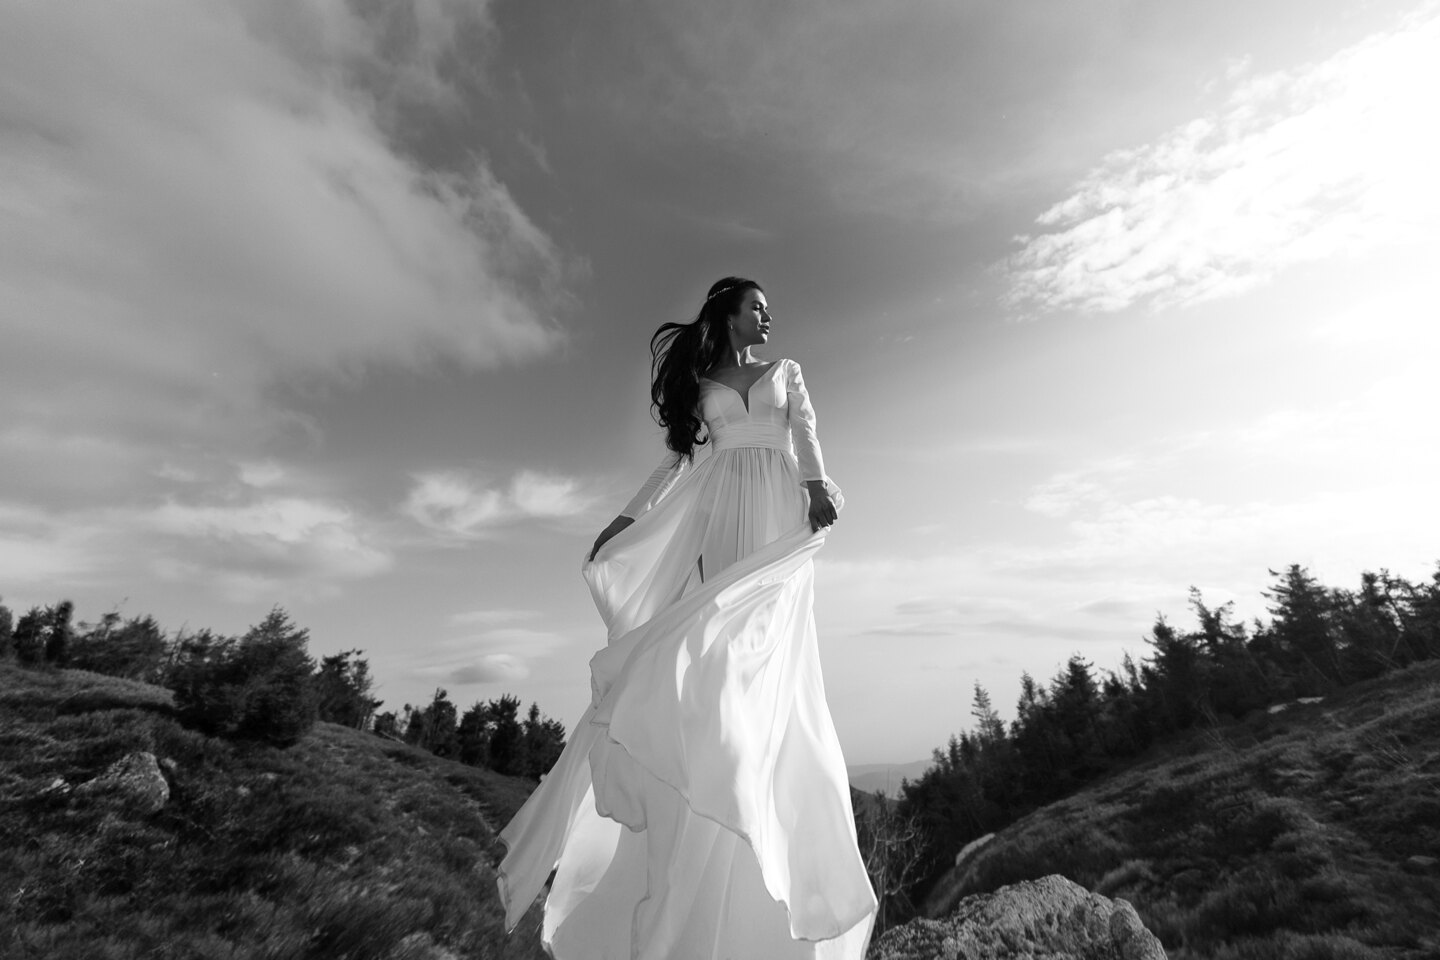 Services of Wedding Photographer in Italy: A fragile bride, stands on a hill among the trees, catches the wind with her dress and hair